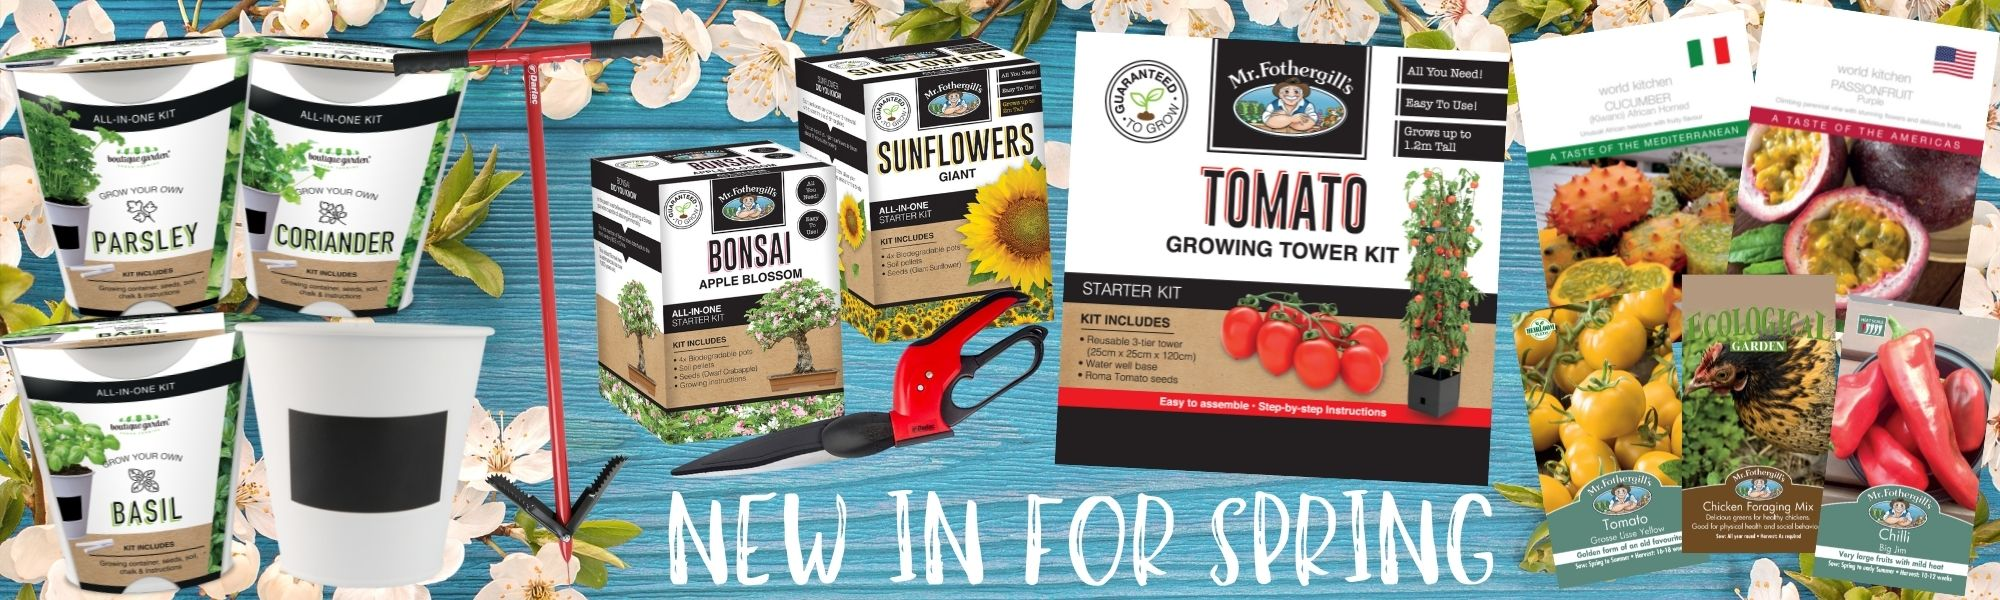 New Spring launch products